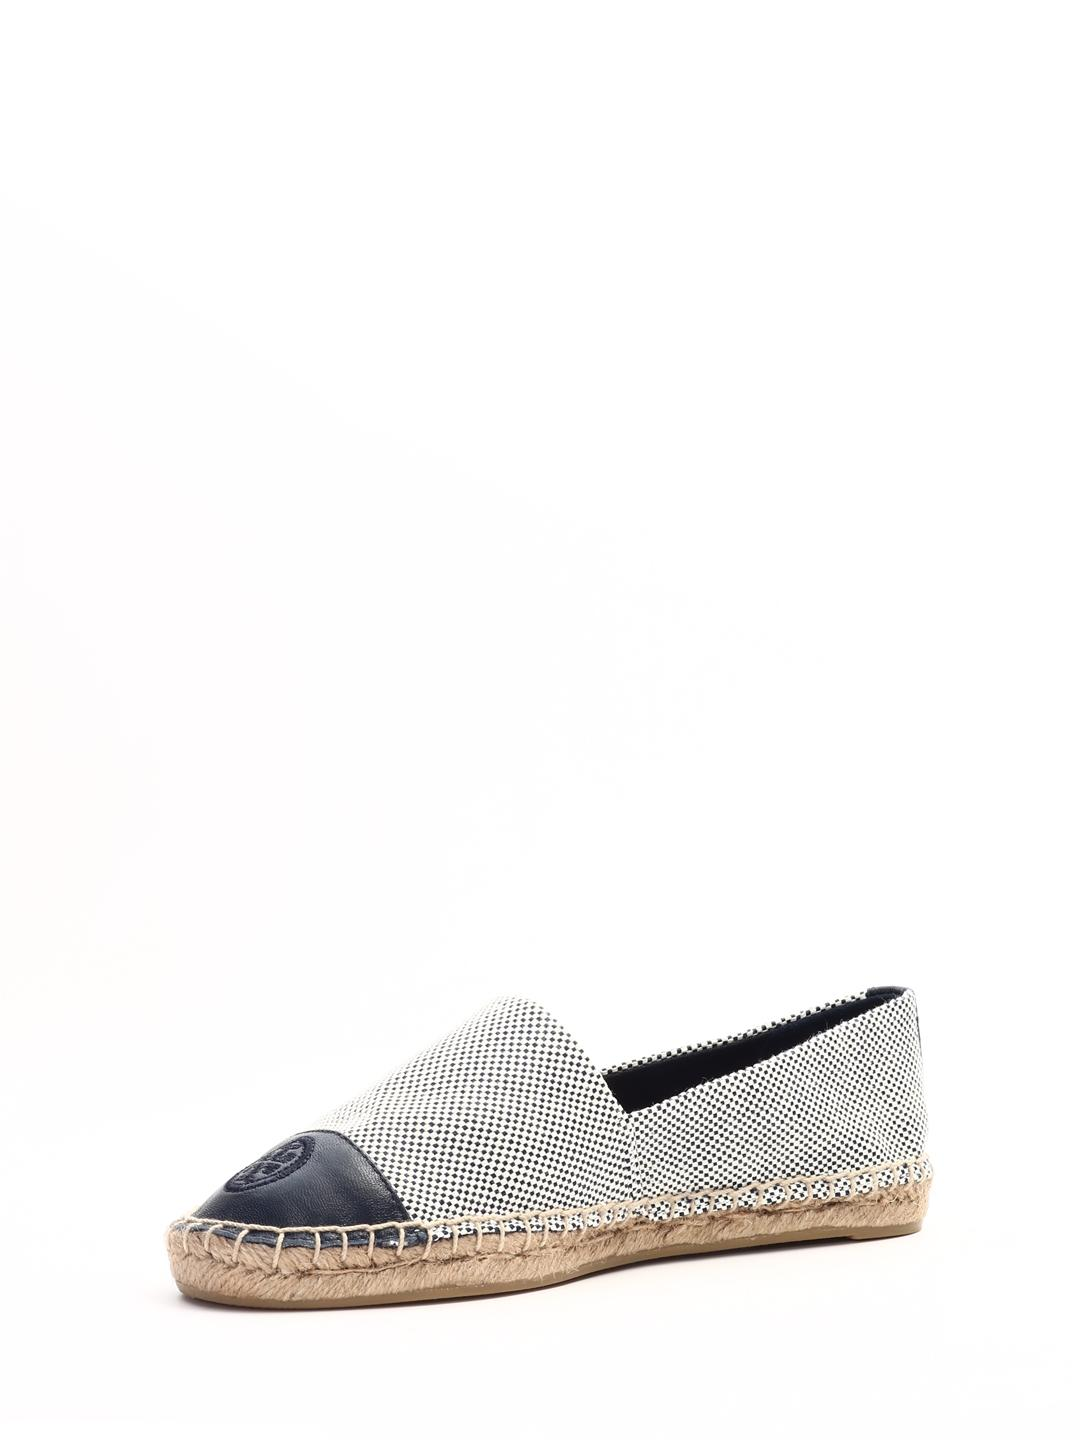 8d9c405e99b Lyst - Tory Burch Color Block Flat Espadrille (ivory black Leather) Women s  Shoes in Blue - Save 6%